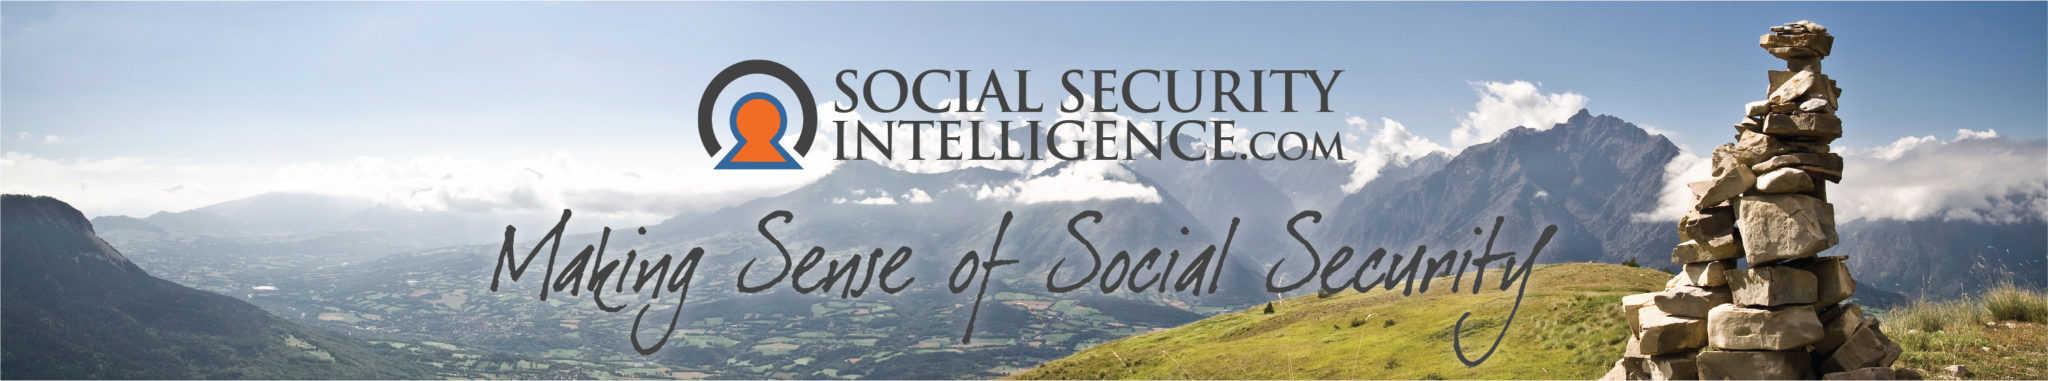 My Social Security Creating Your Social Security Online Account